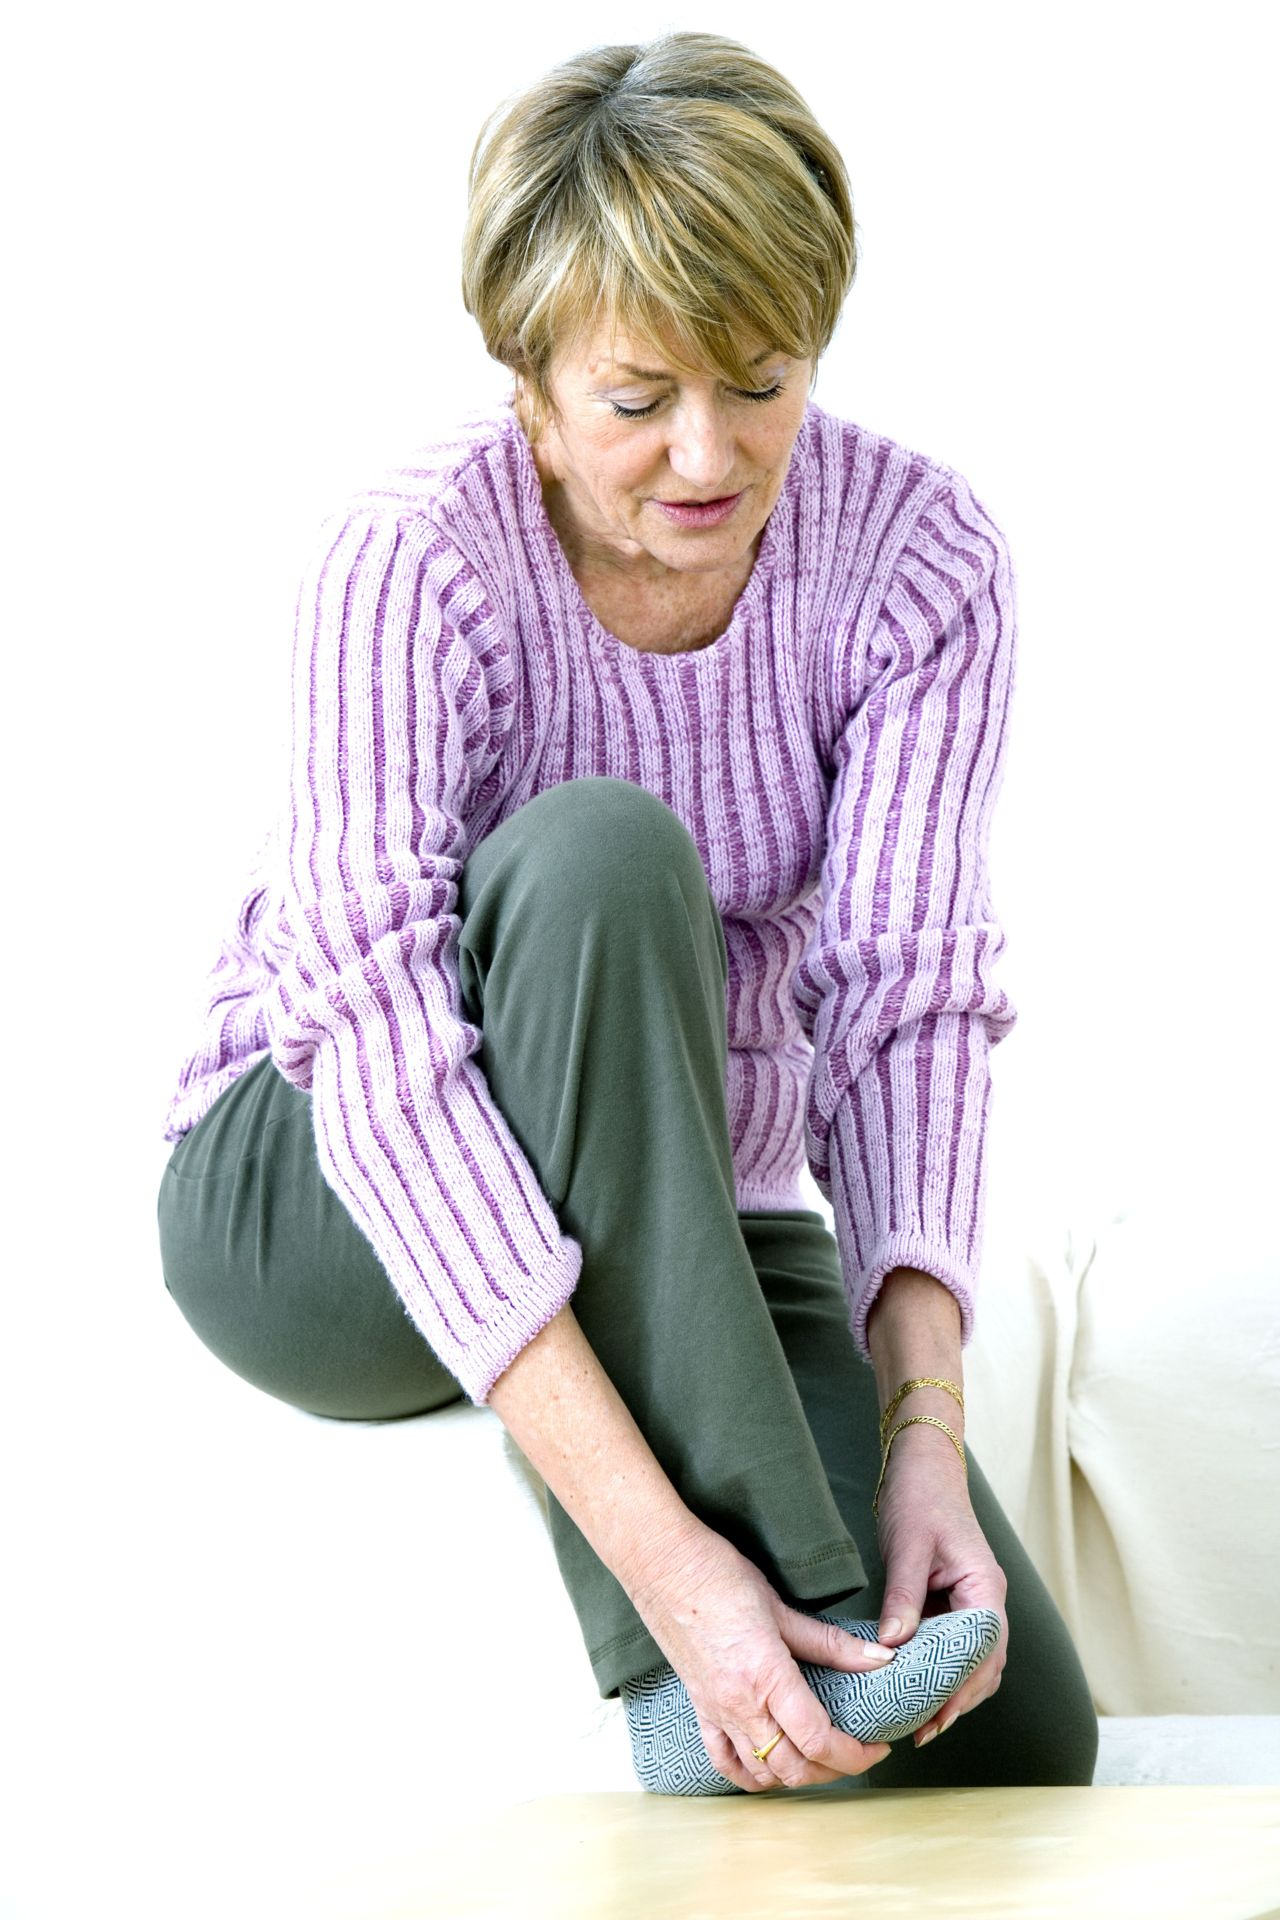 Neuropathy Pain in Feet